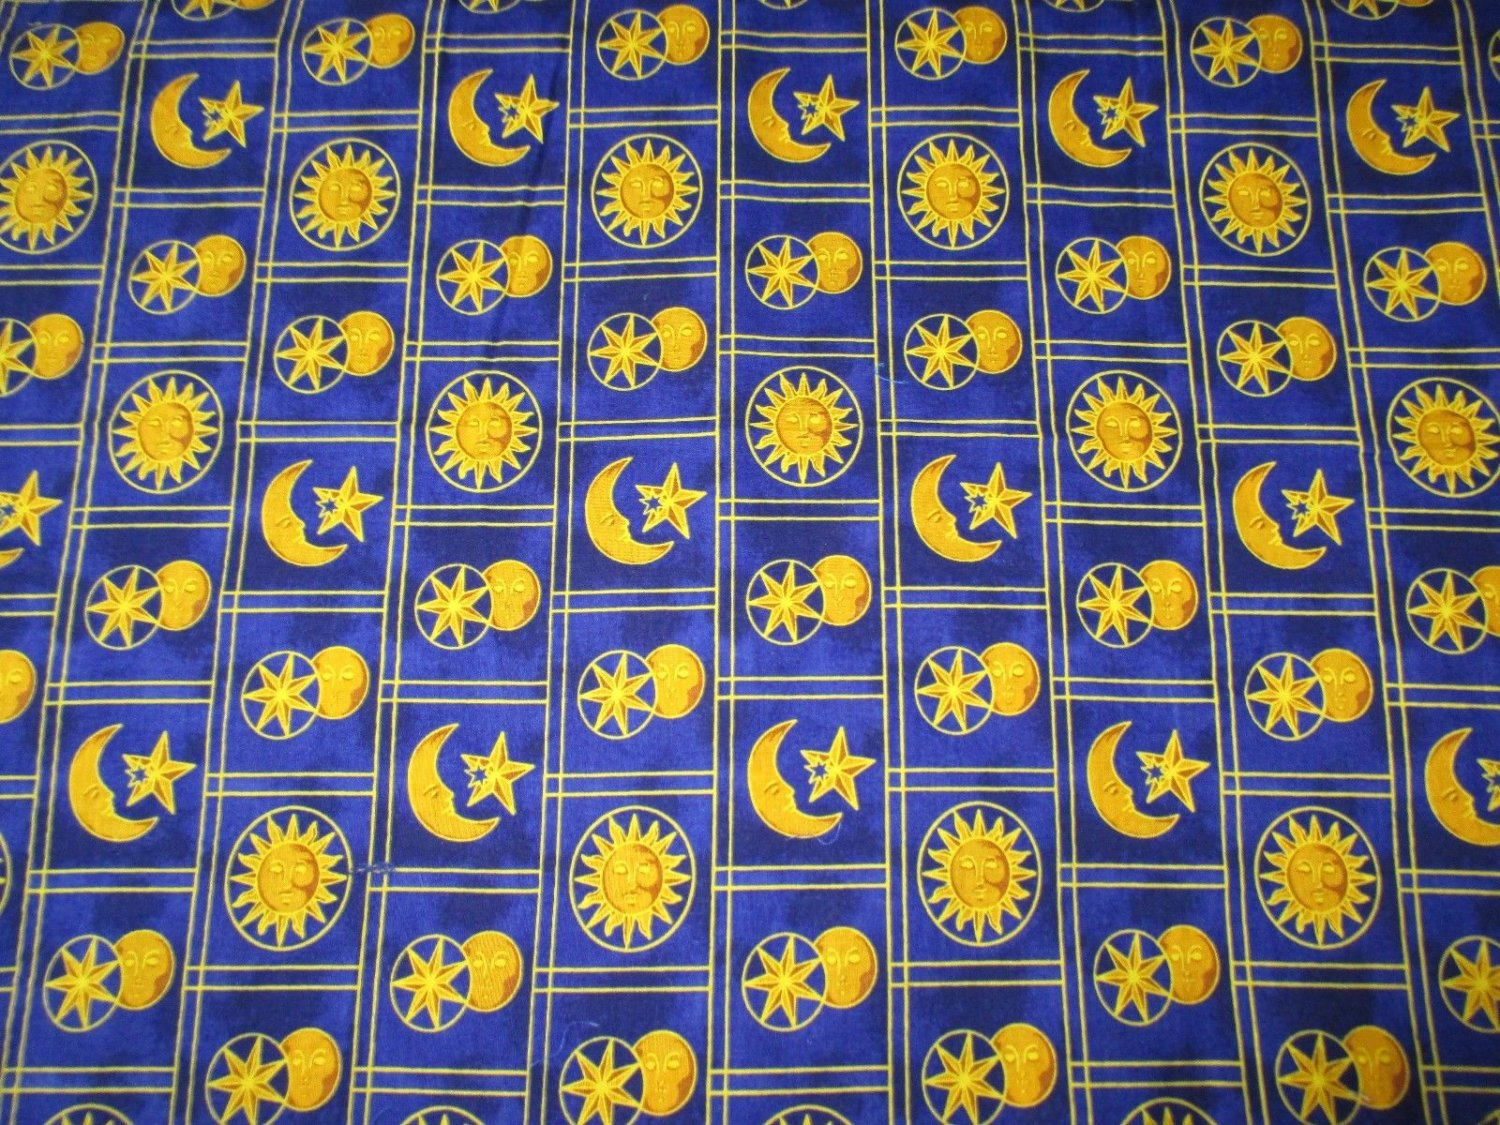 Celestial spirit sun moon stars patch quilt fabric springs for Sun moon fabric